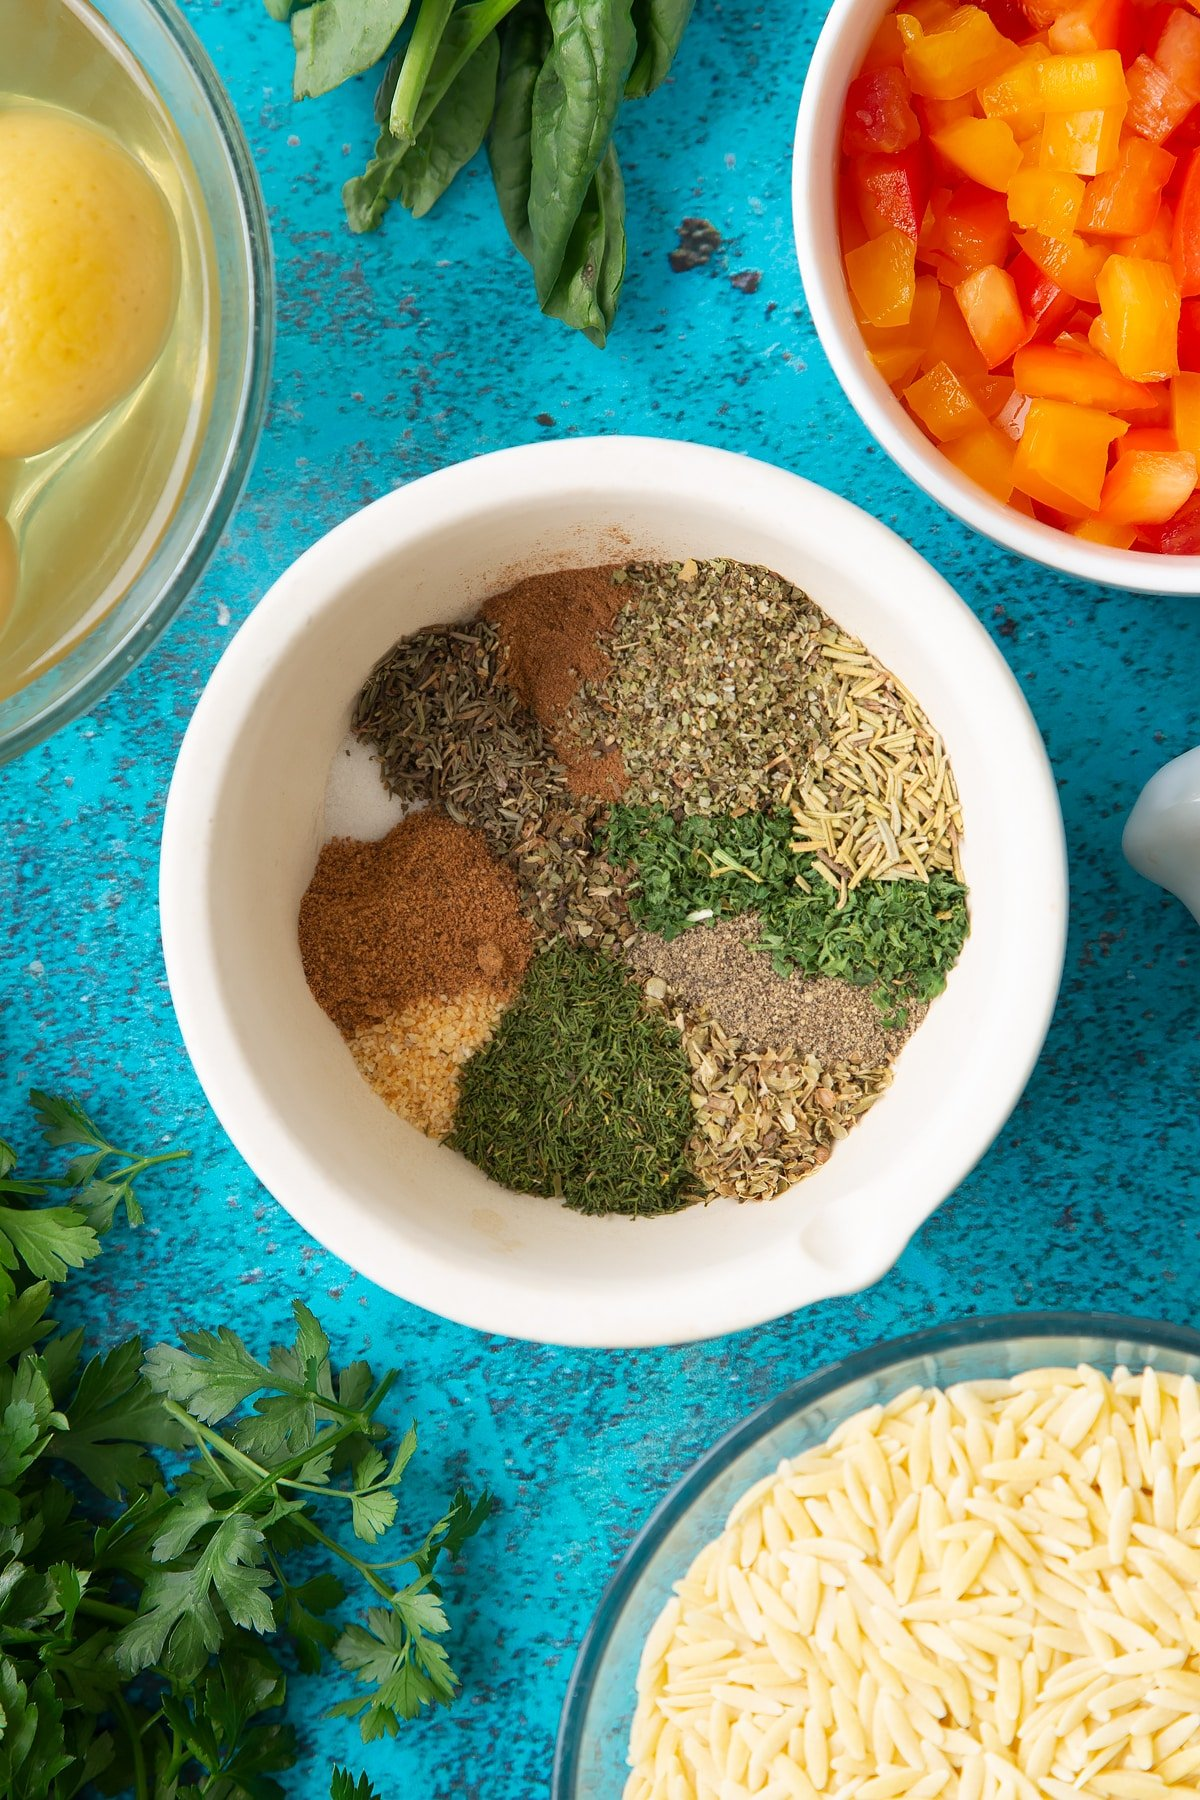 Spices and herbs in a mortar.